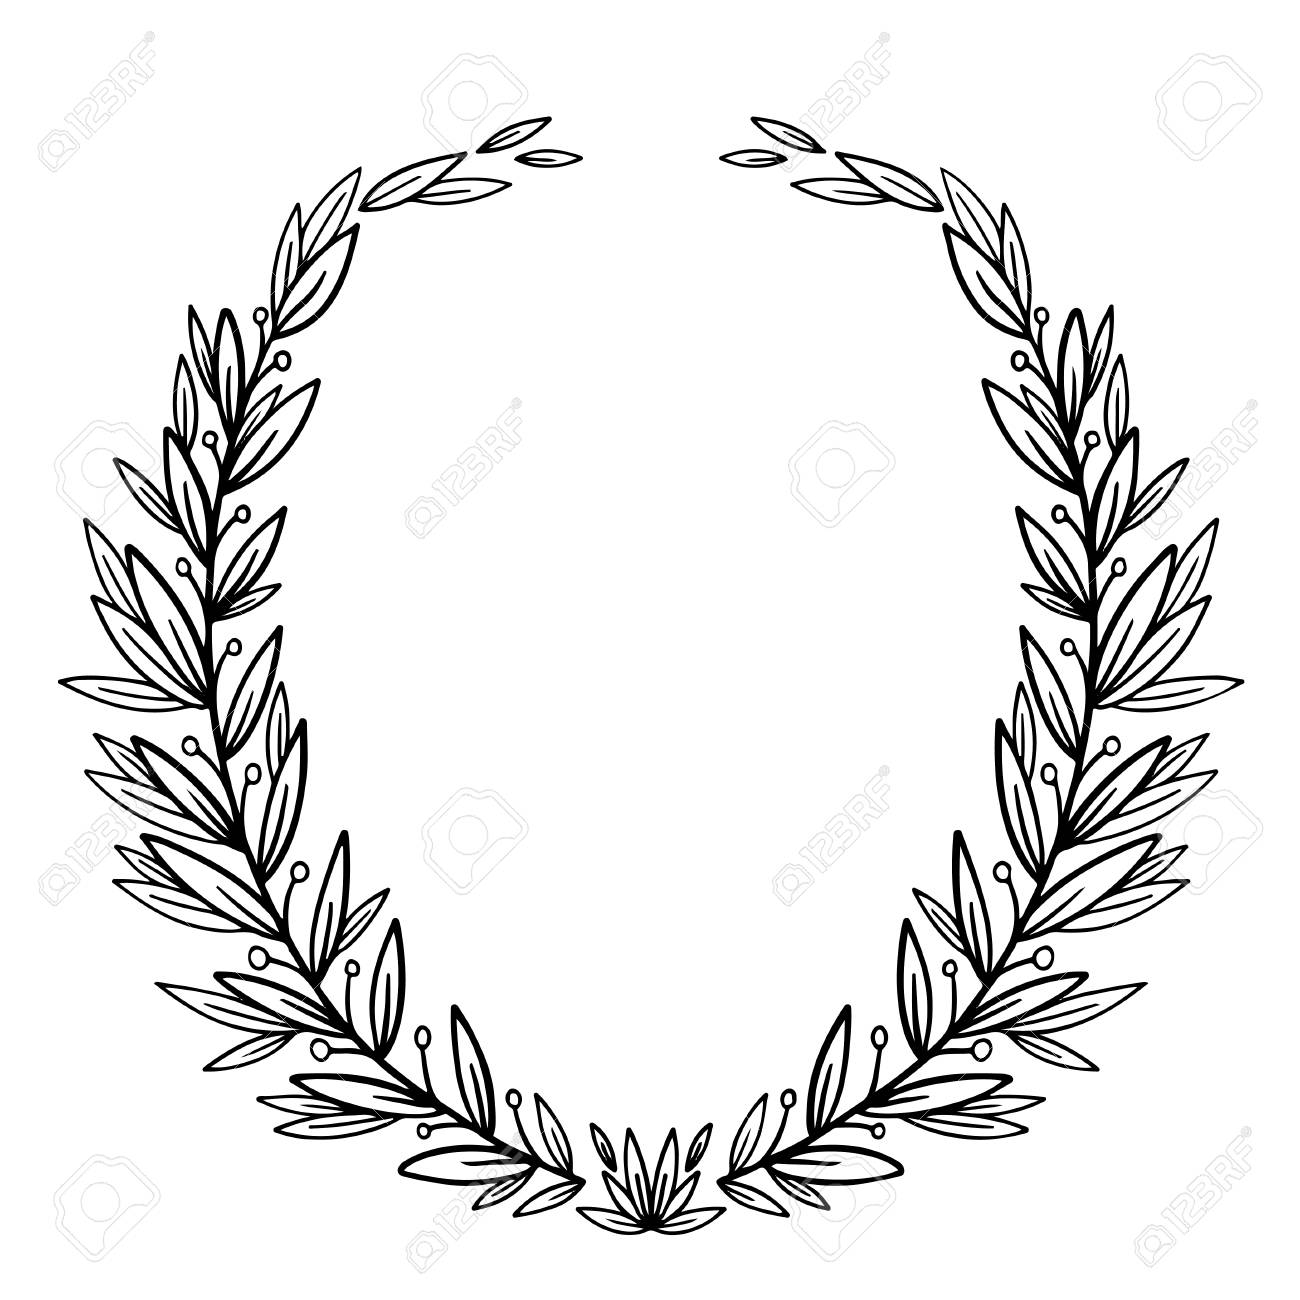 vector nature frame graphic circle wreath for text illustration royalty free cliparts vectors and stock illustration image 106686118 vector nature frame graphic circle wreath for text illustration